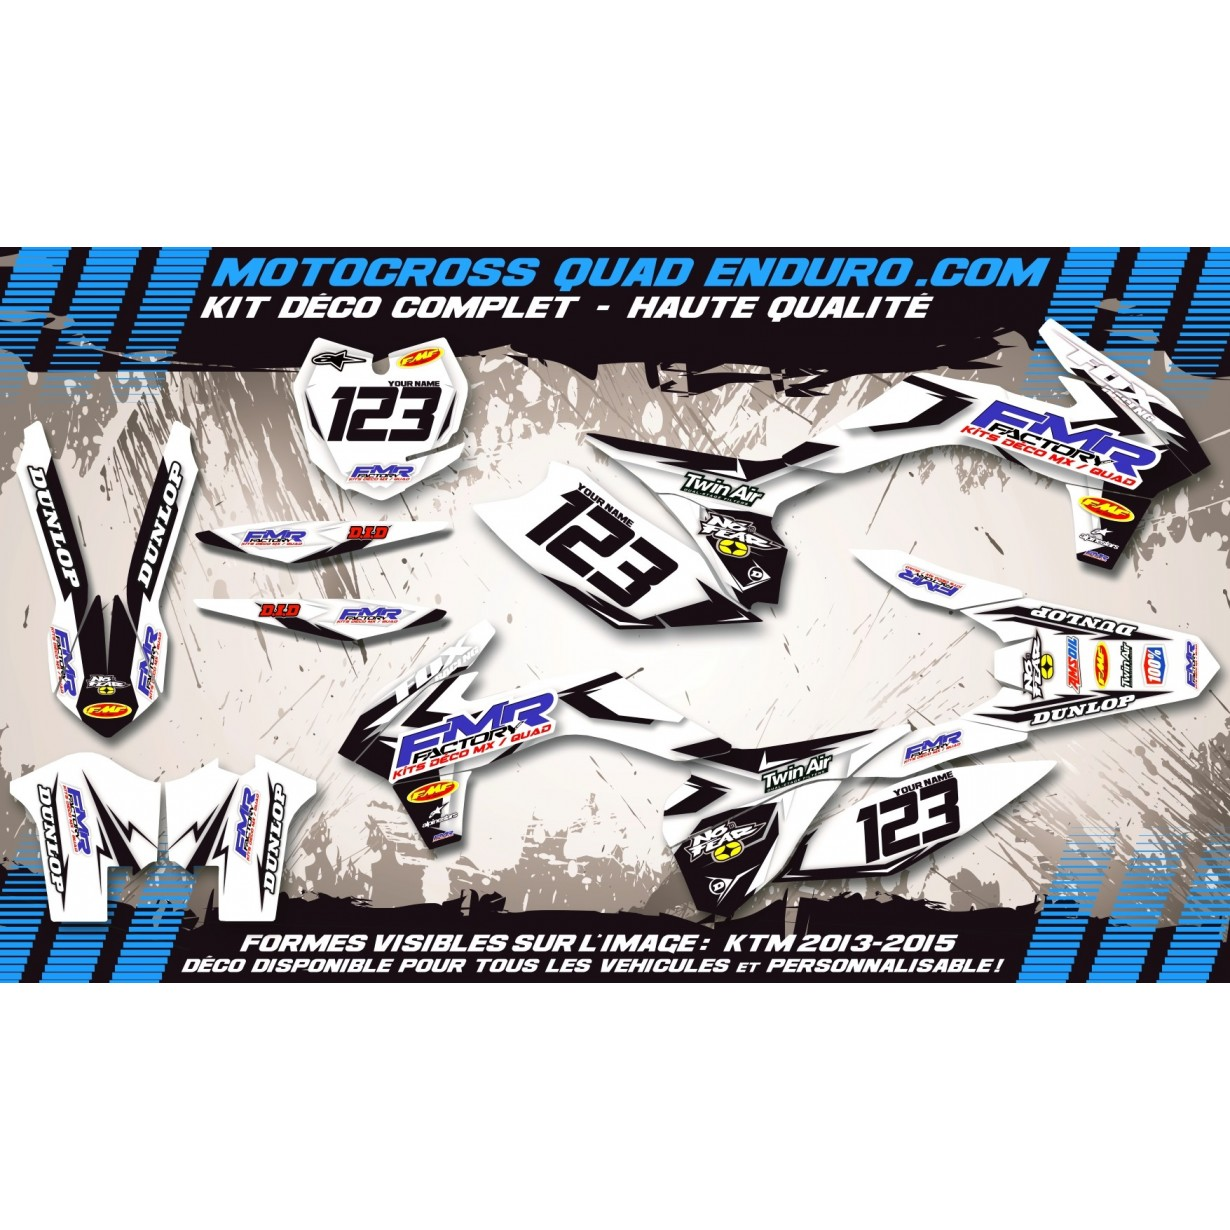 KIT DÉCO Perso 350 RAPTOR Quad Fmr factory WT Edition MA13WT